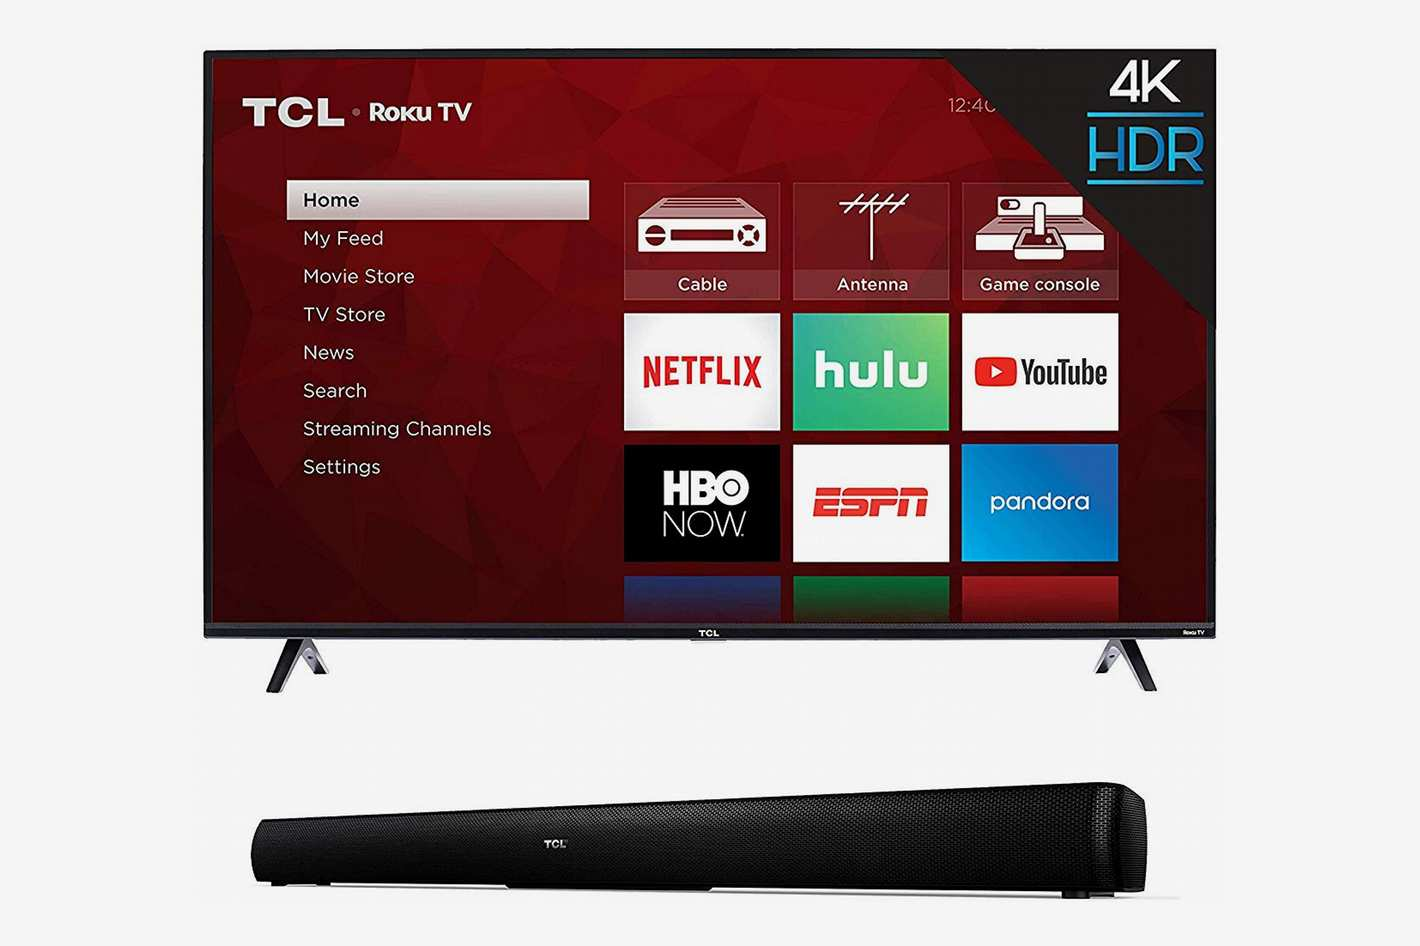 TCL 43 Inch 4K Ultra HD Smart Roku LED TV (2018) with TCL Alto 5 2.0 Channel Home Theater Sound Bar - TS5000